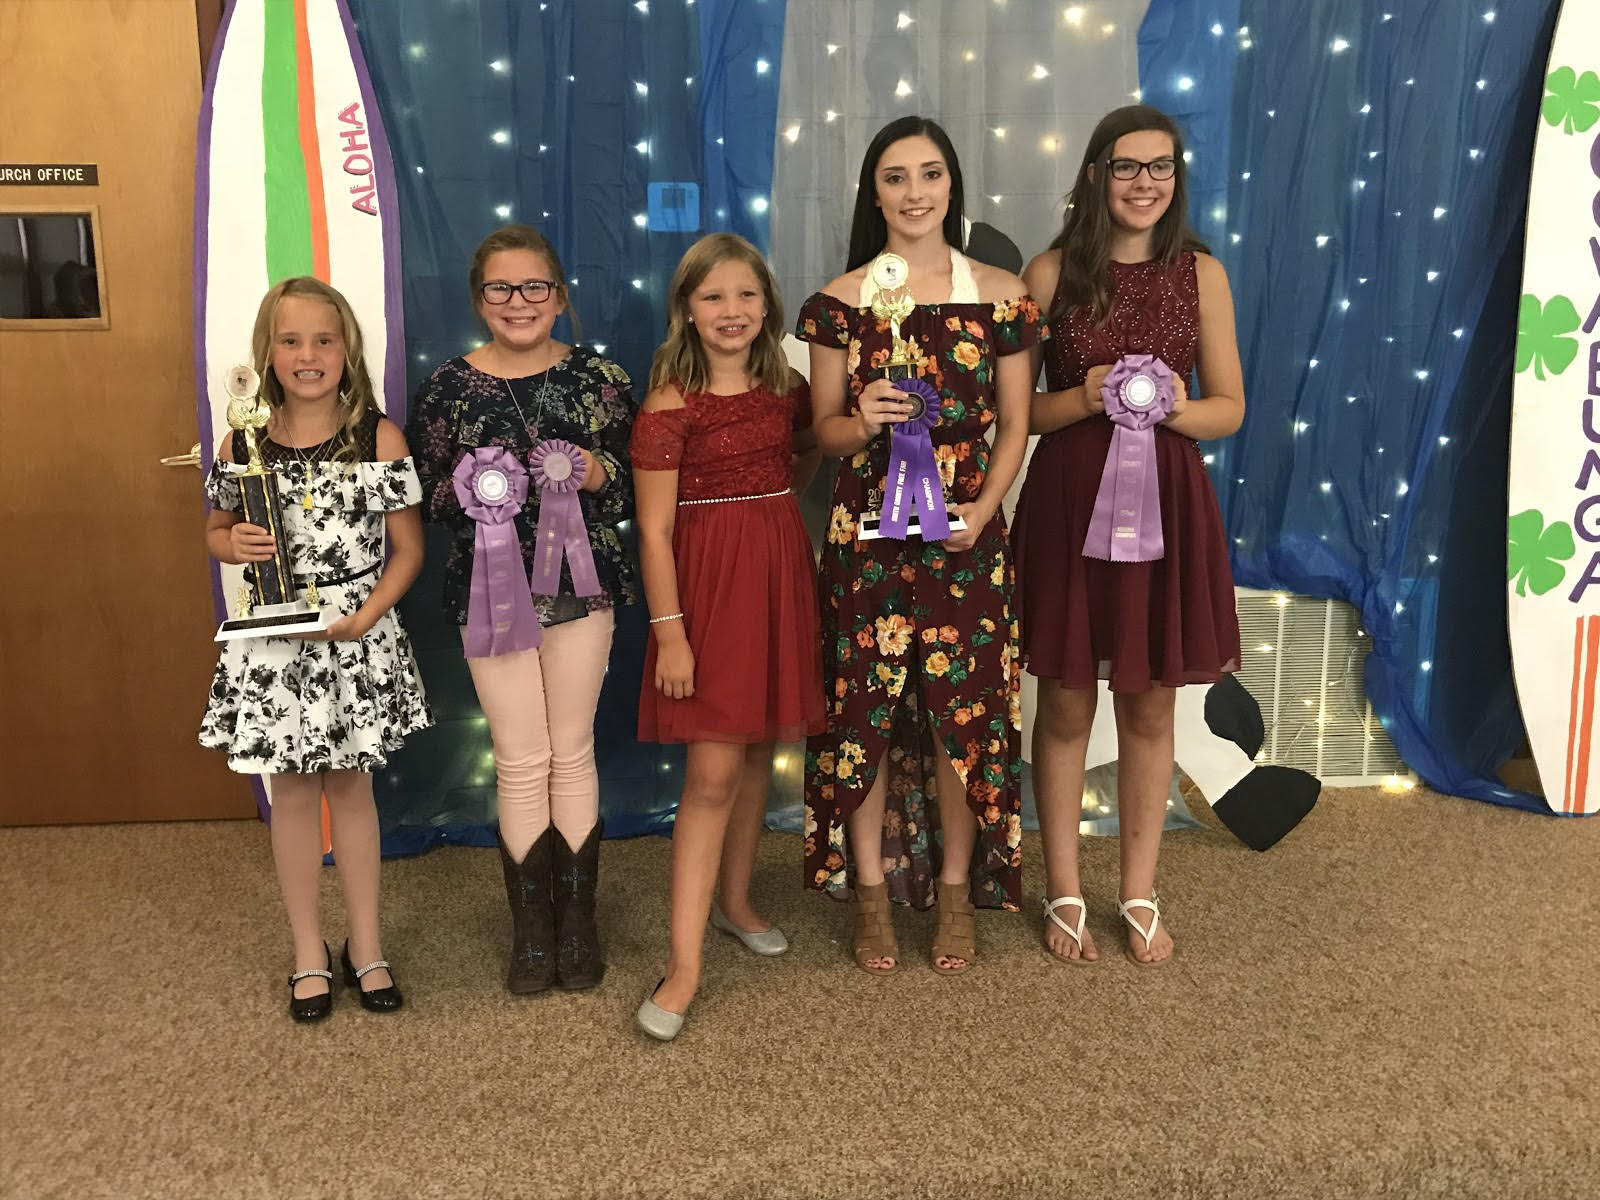 Busy Bee girls at the Fashion Review, left to right: Lexi Rust, KensLy Blank, Kaydence Dodds, Layne Pettijohn, TyLynn Blank.